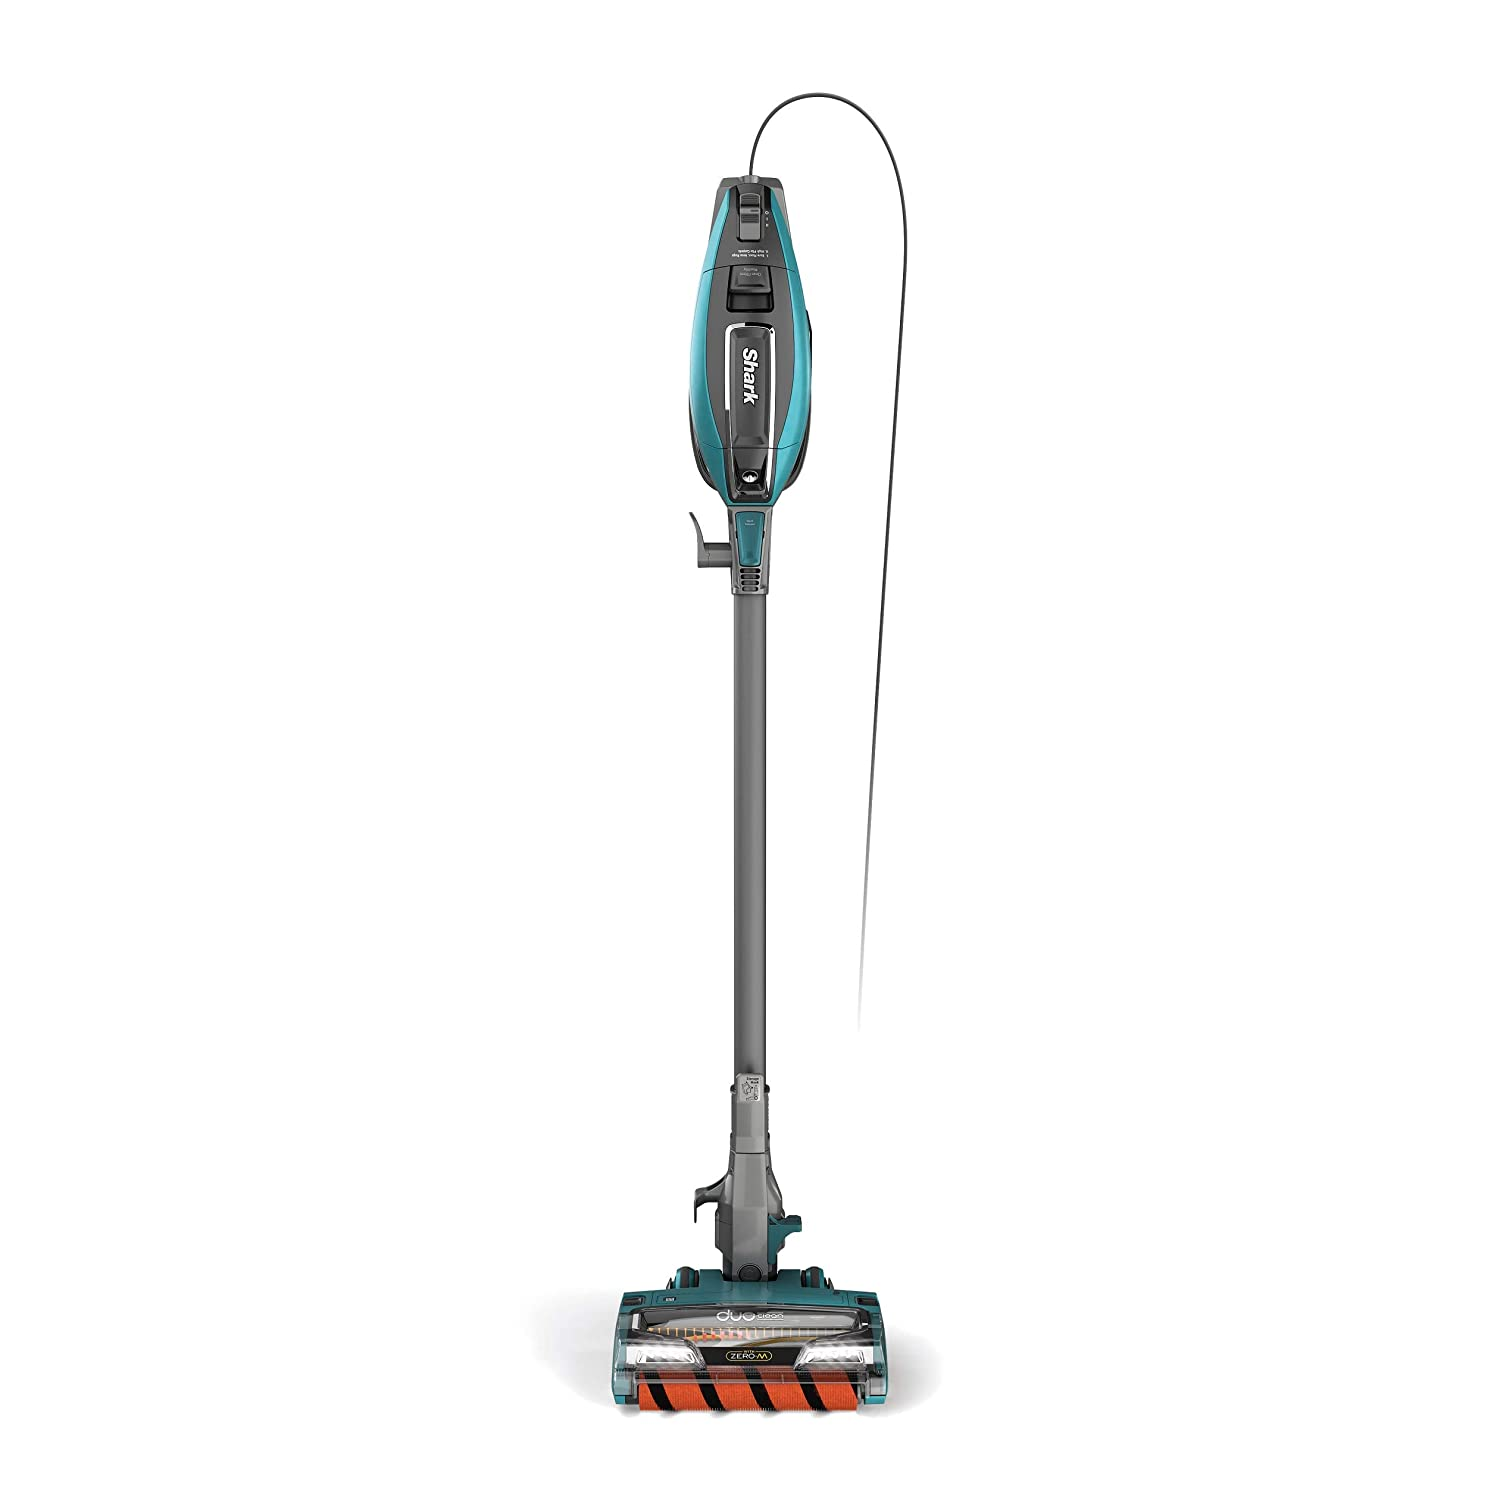 Shark APEX DuoClean with Zero-M No Hair Wrap (ZS362) Stick Vacuum Forest Mist Blue